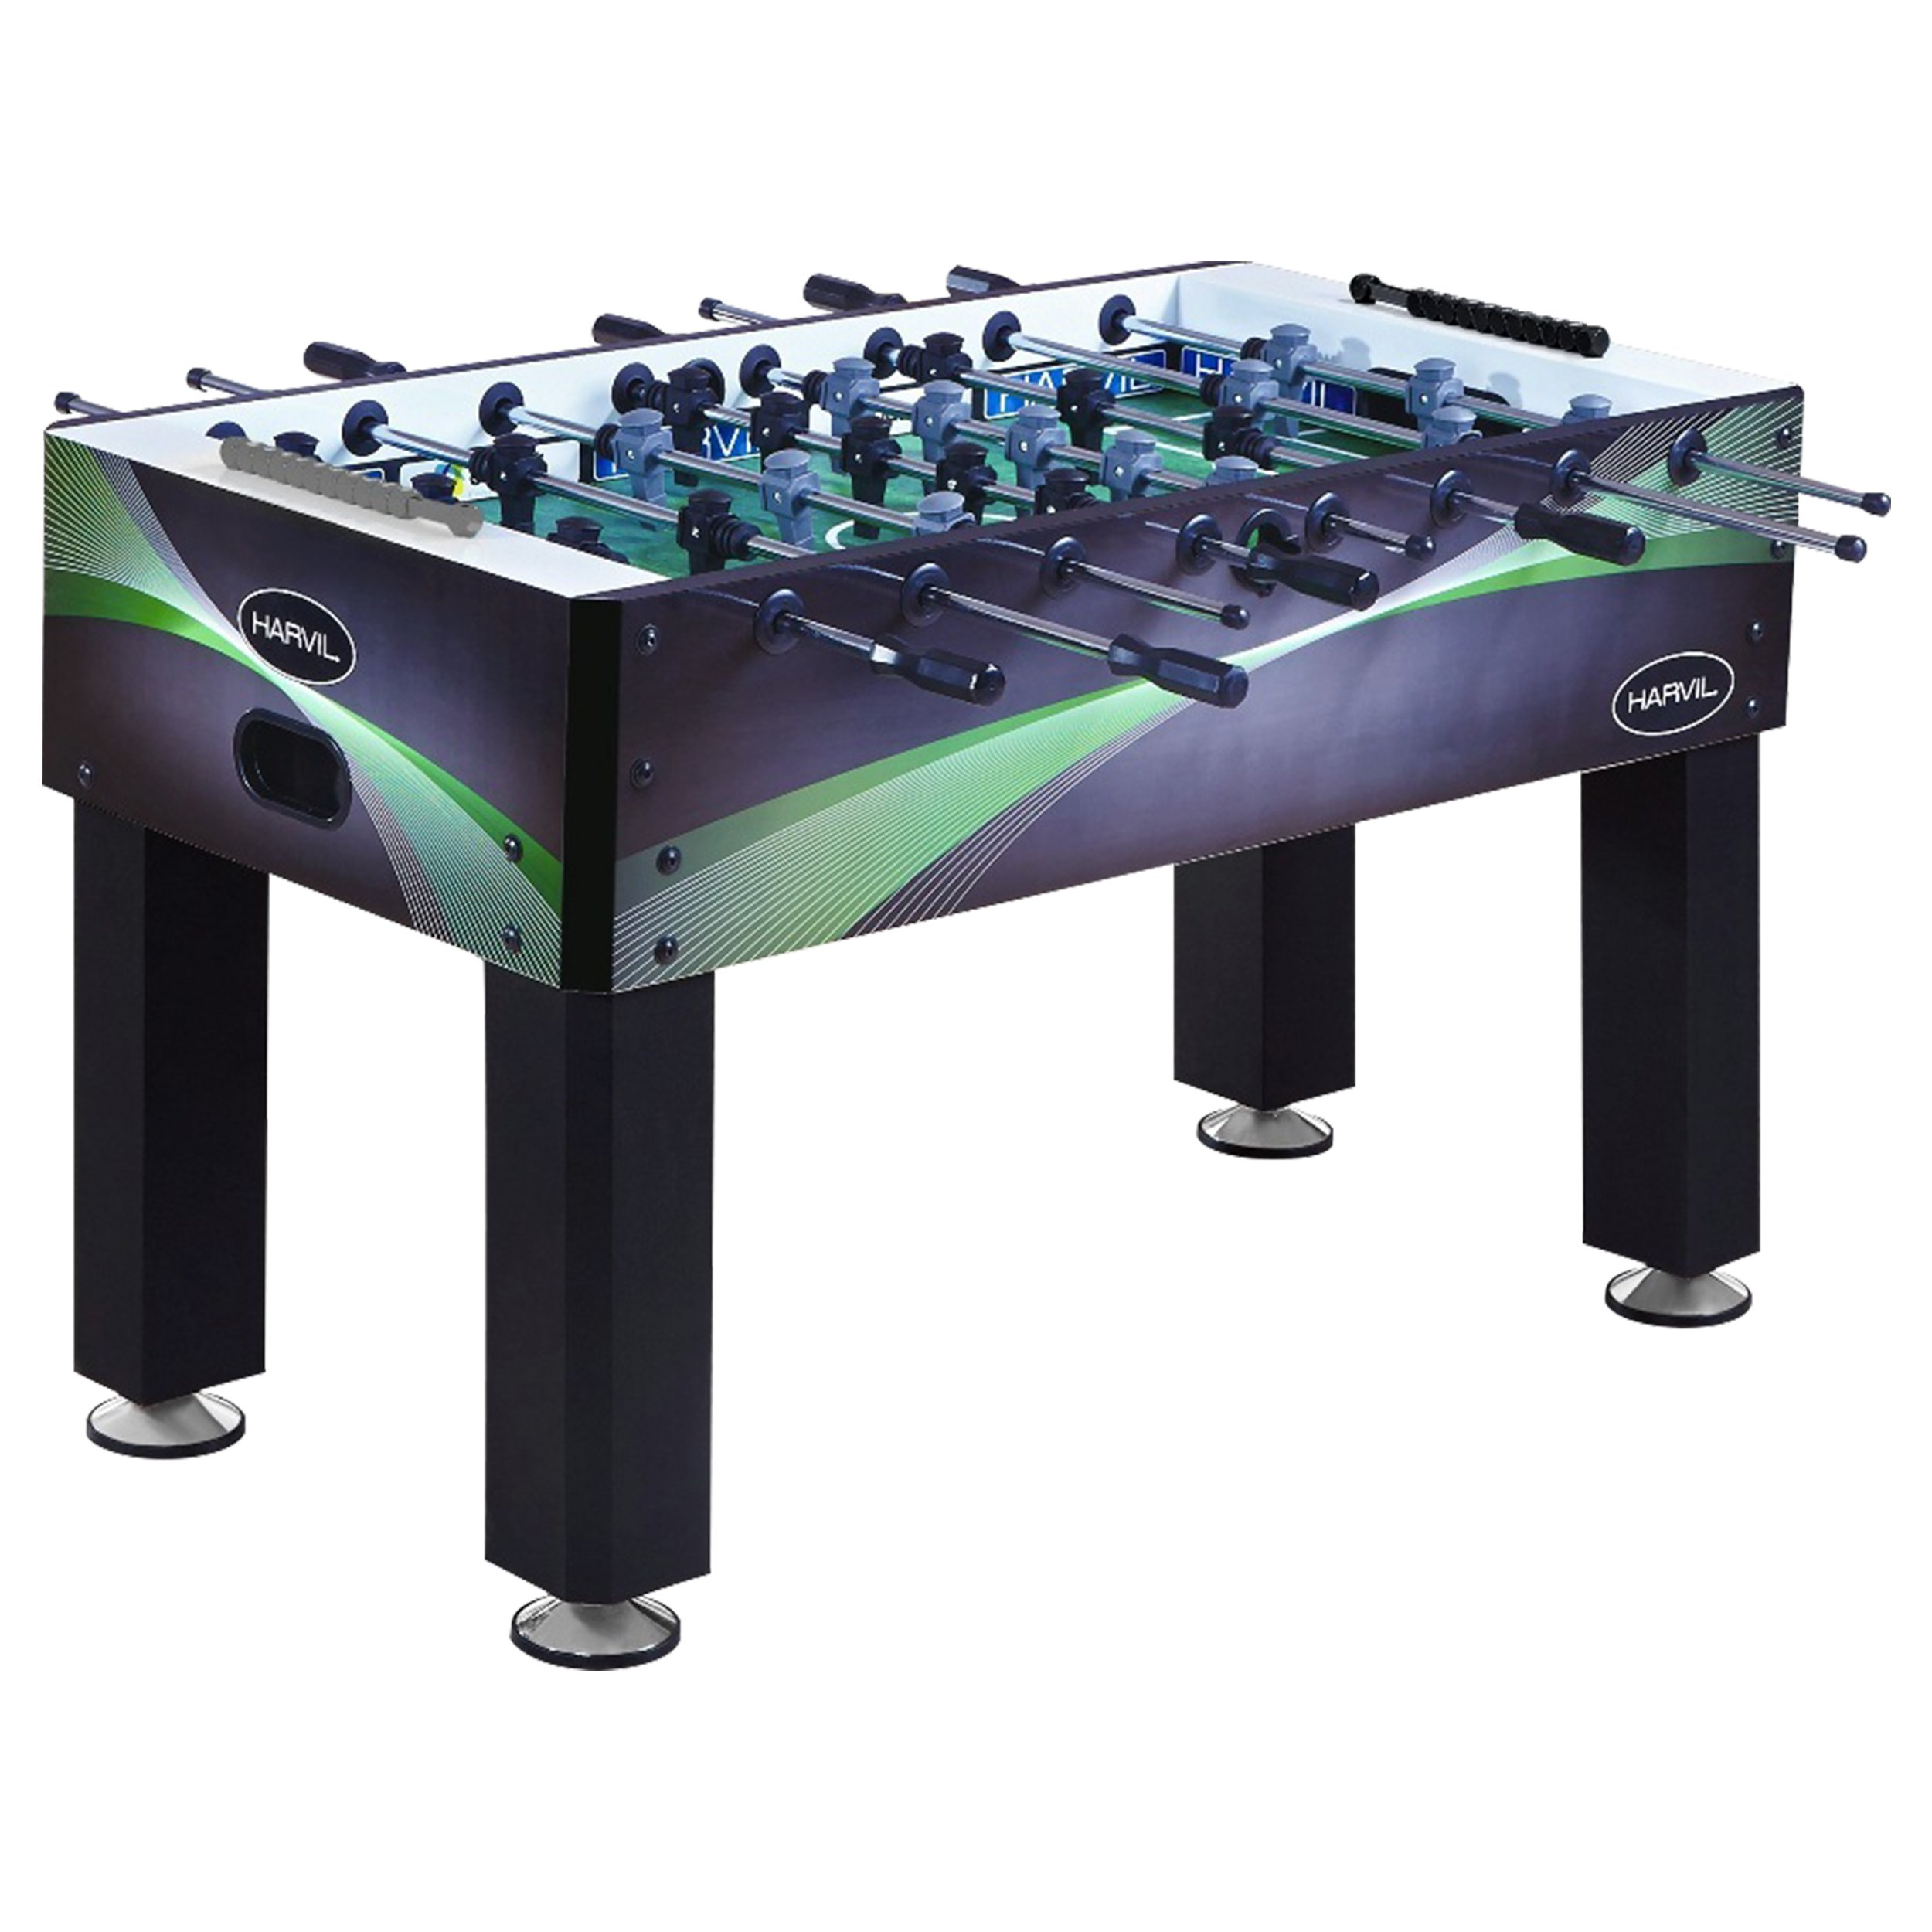 Harvil 54-Inch Defender Foosball Table with Leg Levelers, Steel Rods with Non-Slip Rubber Handles, and 2 Manual Scoring Units